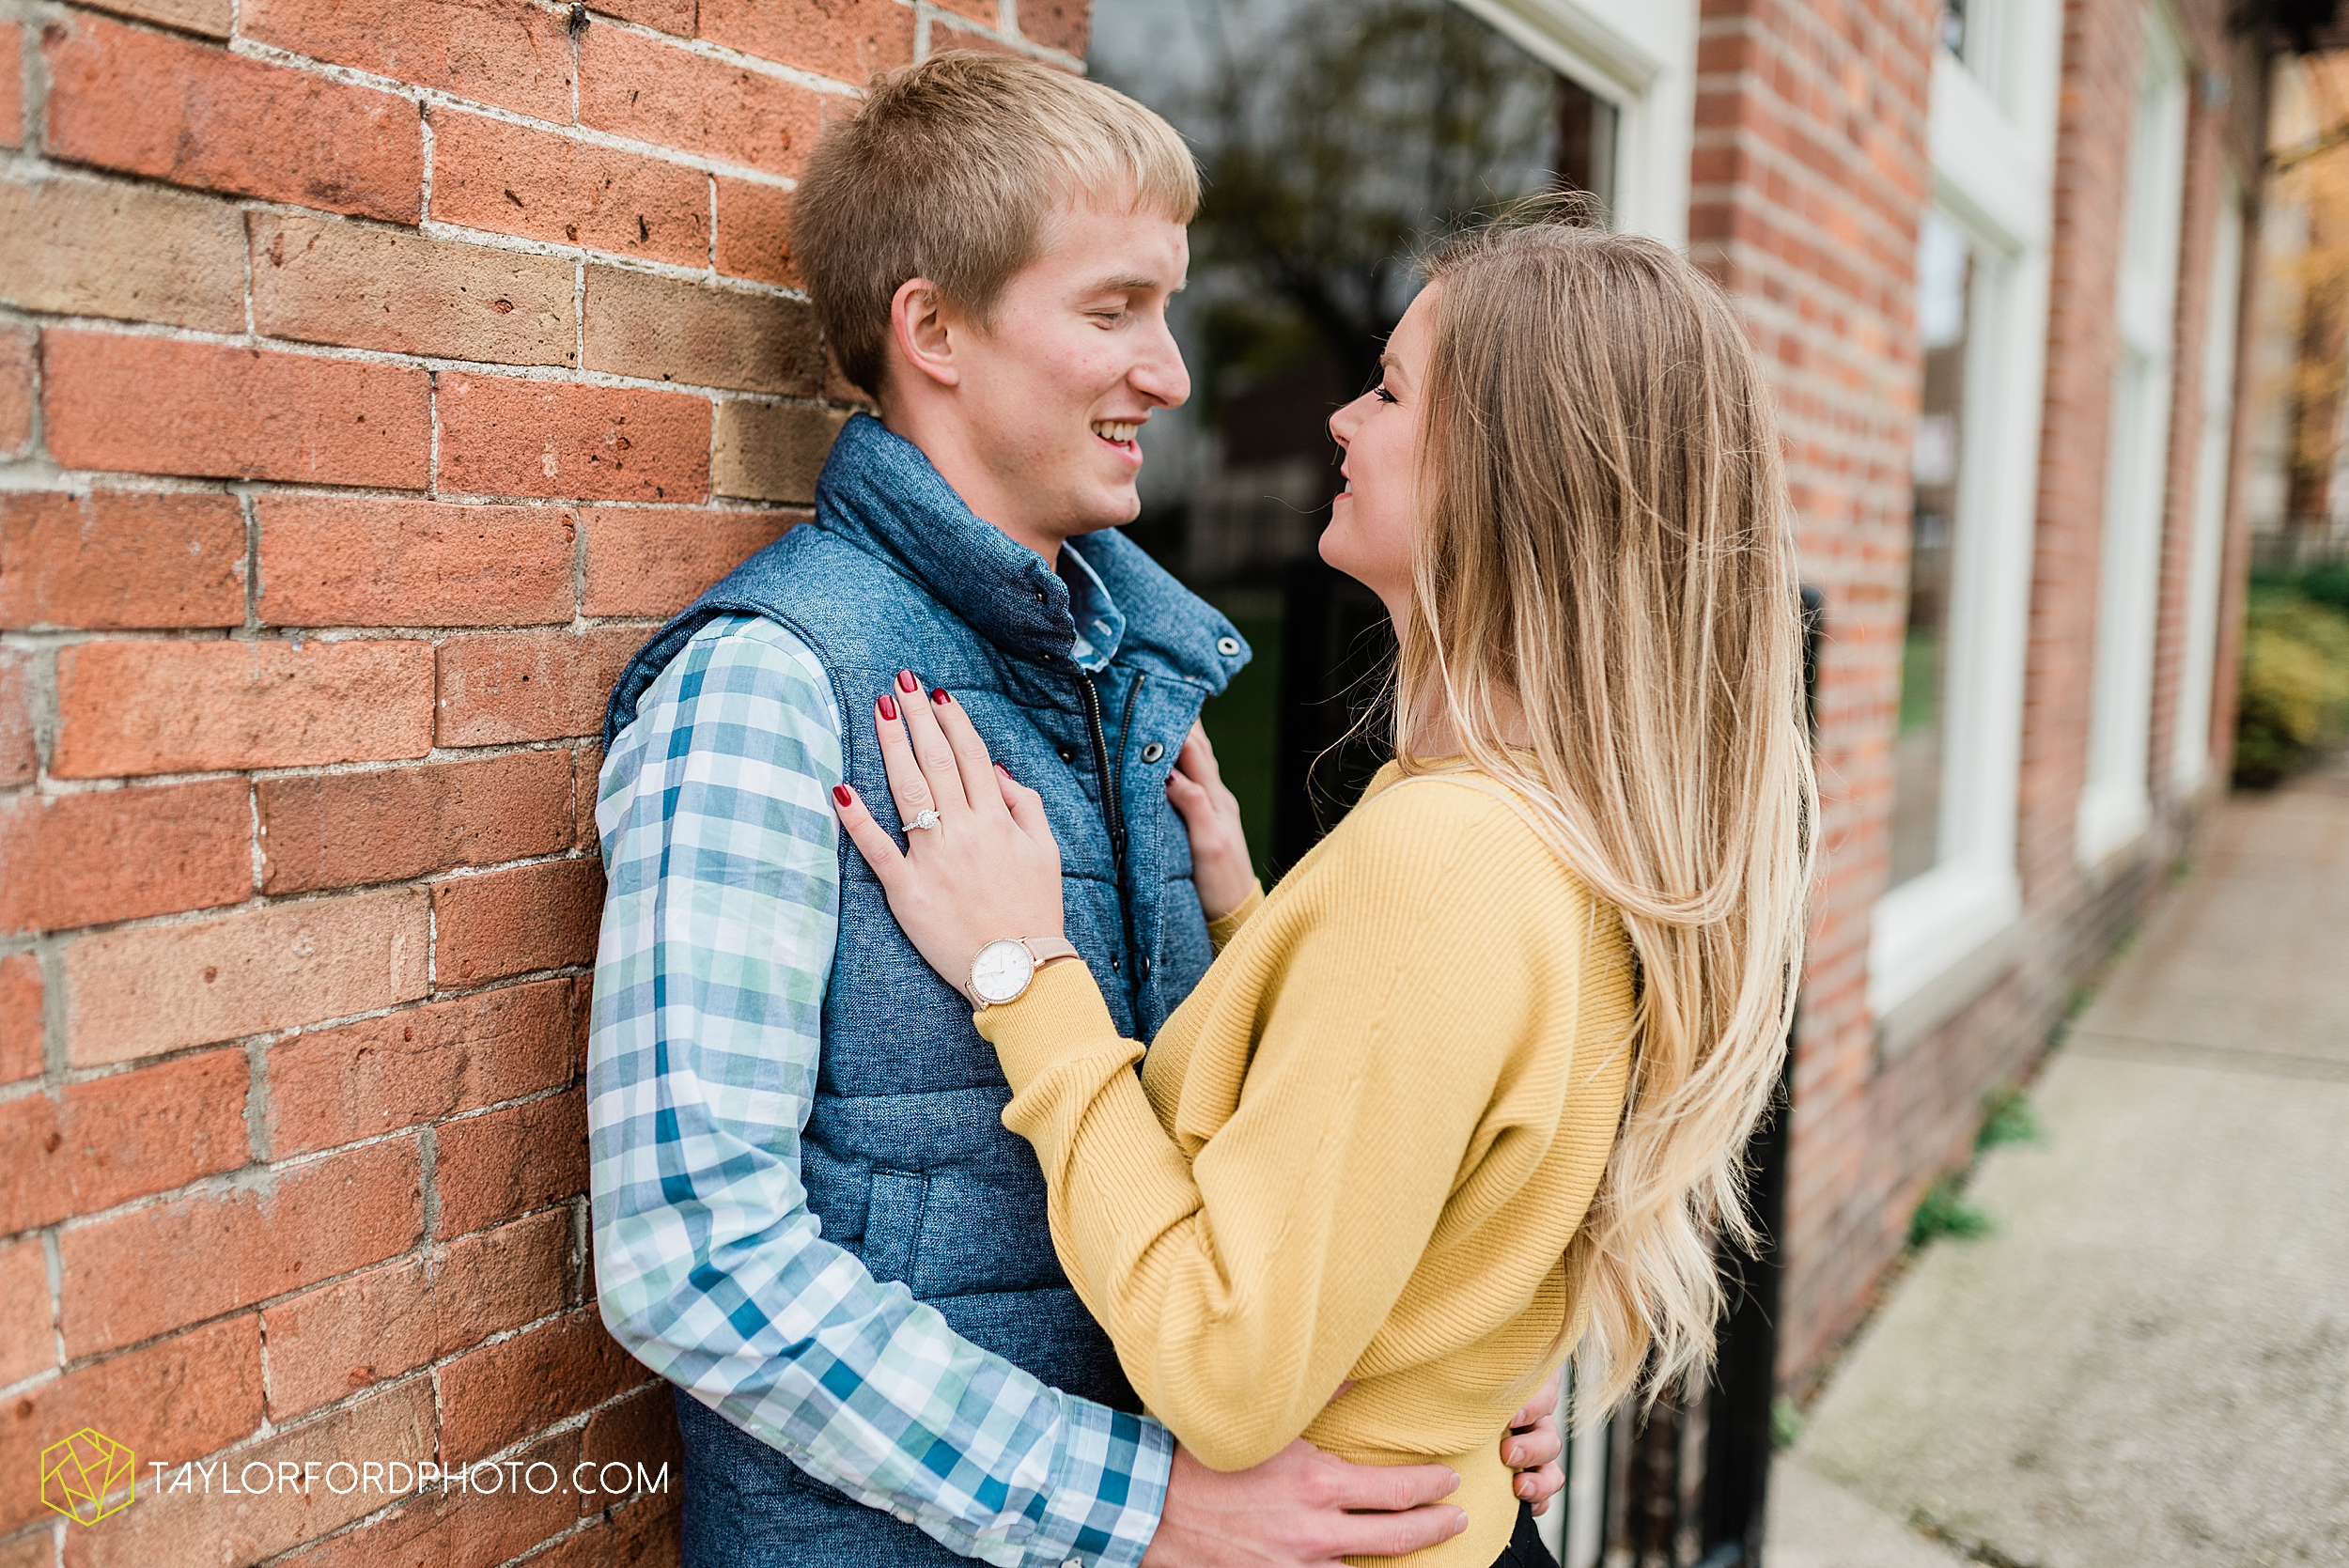 joce-chris-downtown-toledo-museum-of-art-engagement-fall-photographer-taylor-ford-photography_1485.jpg